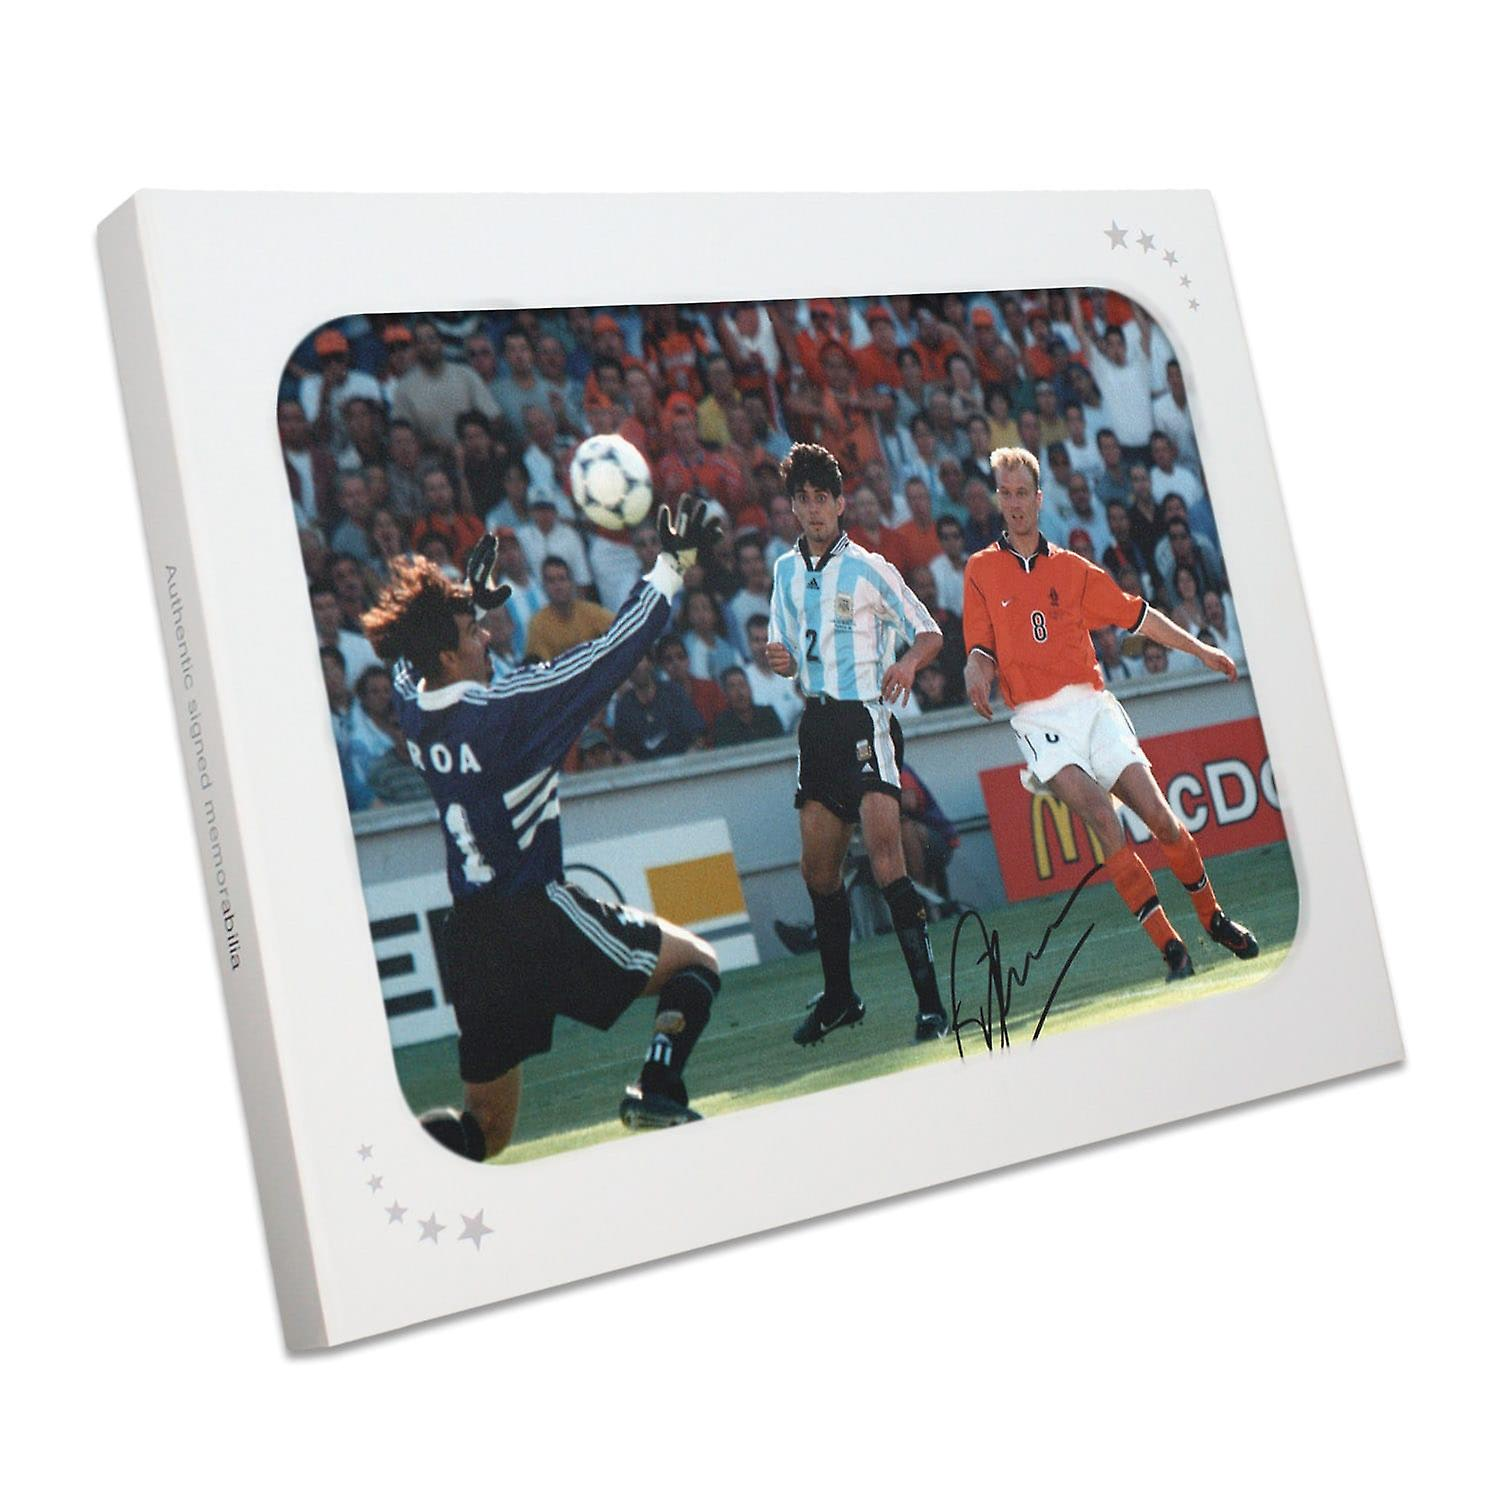 Dennis Bergkamp Signed Holland Photo: The Argentina Goal In Gift Box